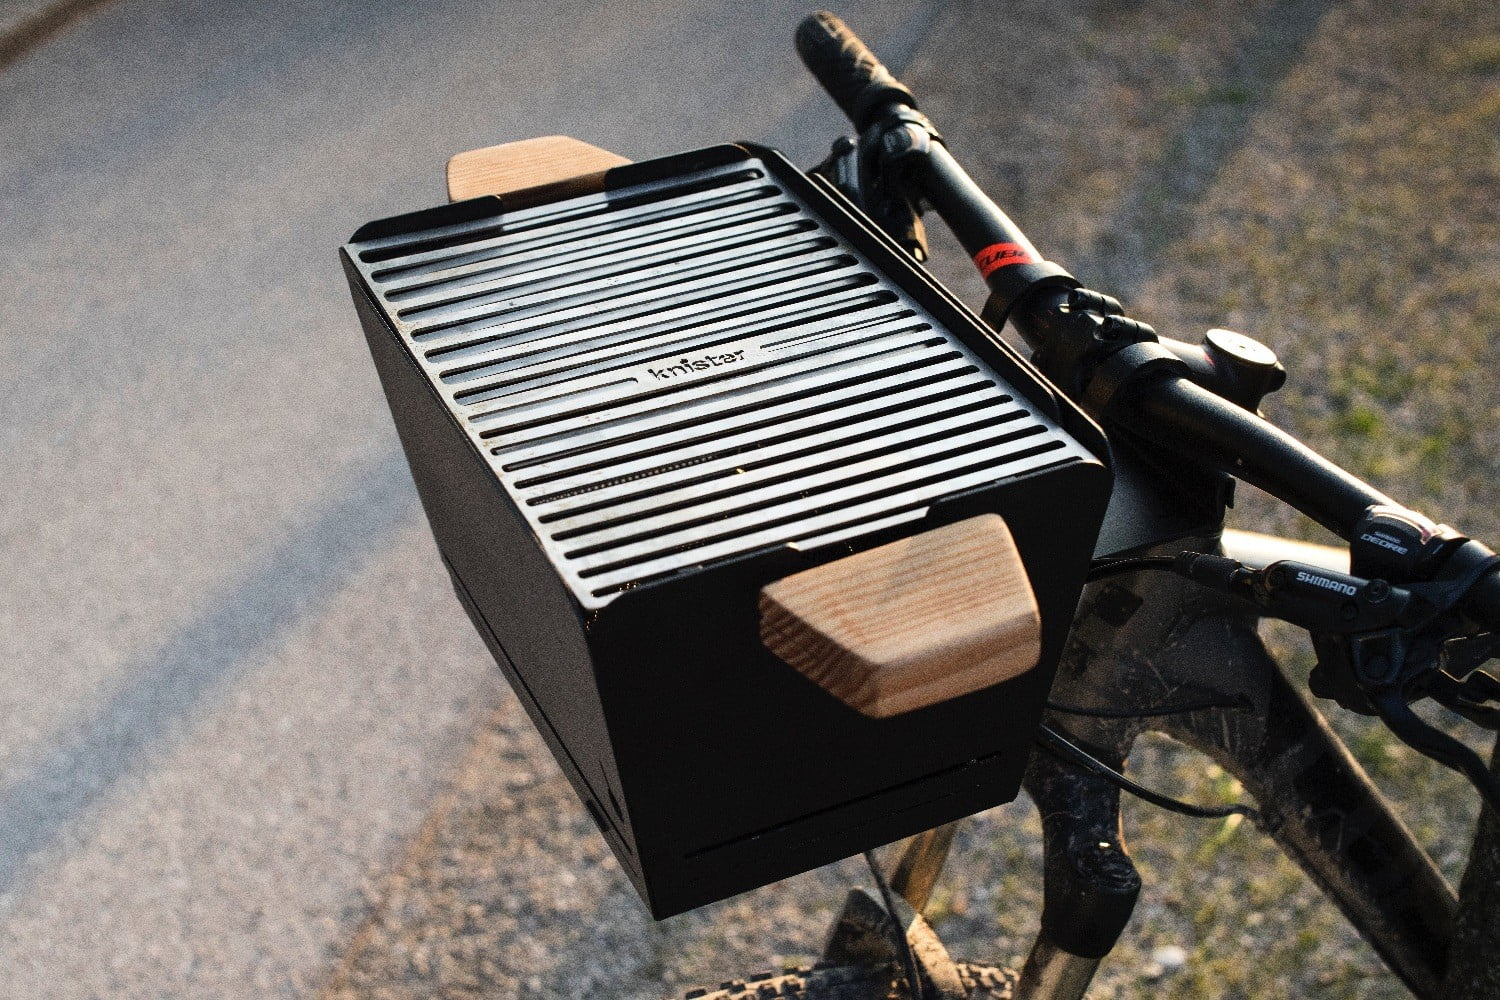 This portable grill transforms your bike into a rolling BBQ